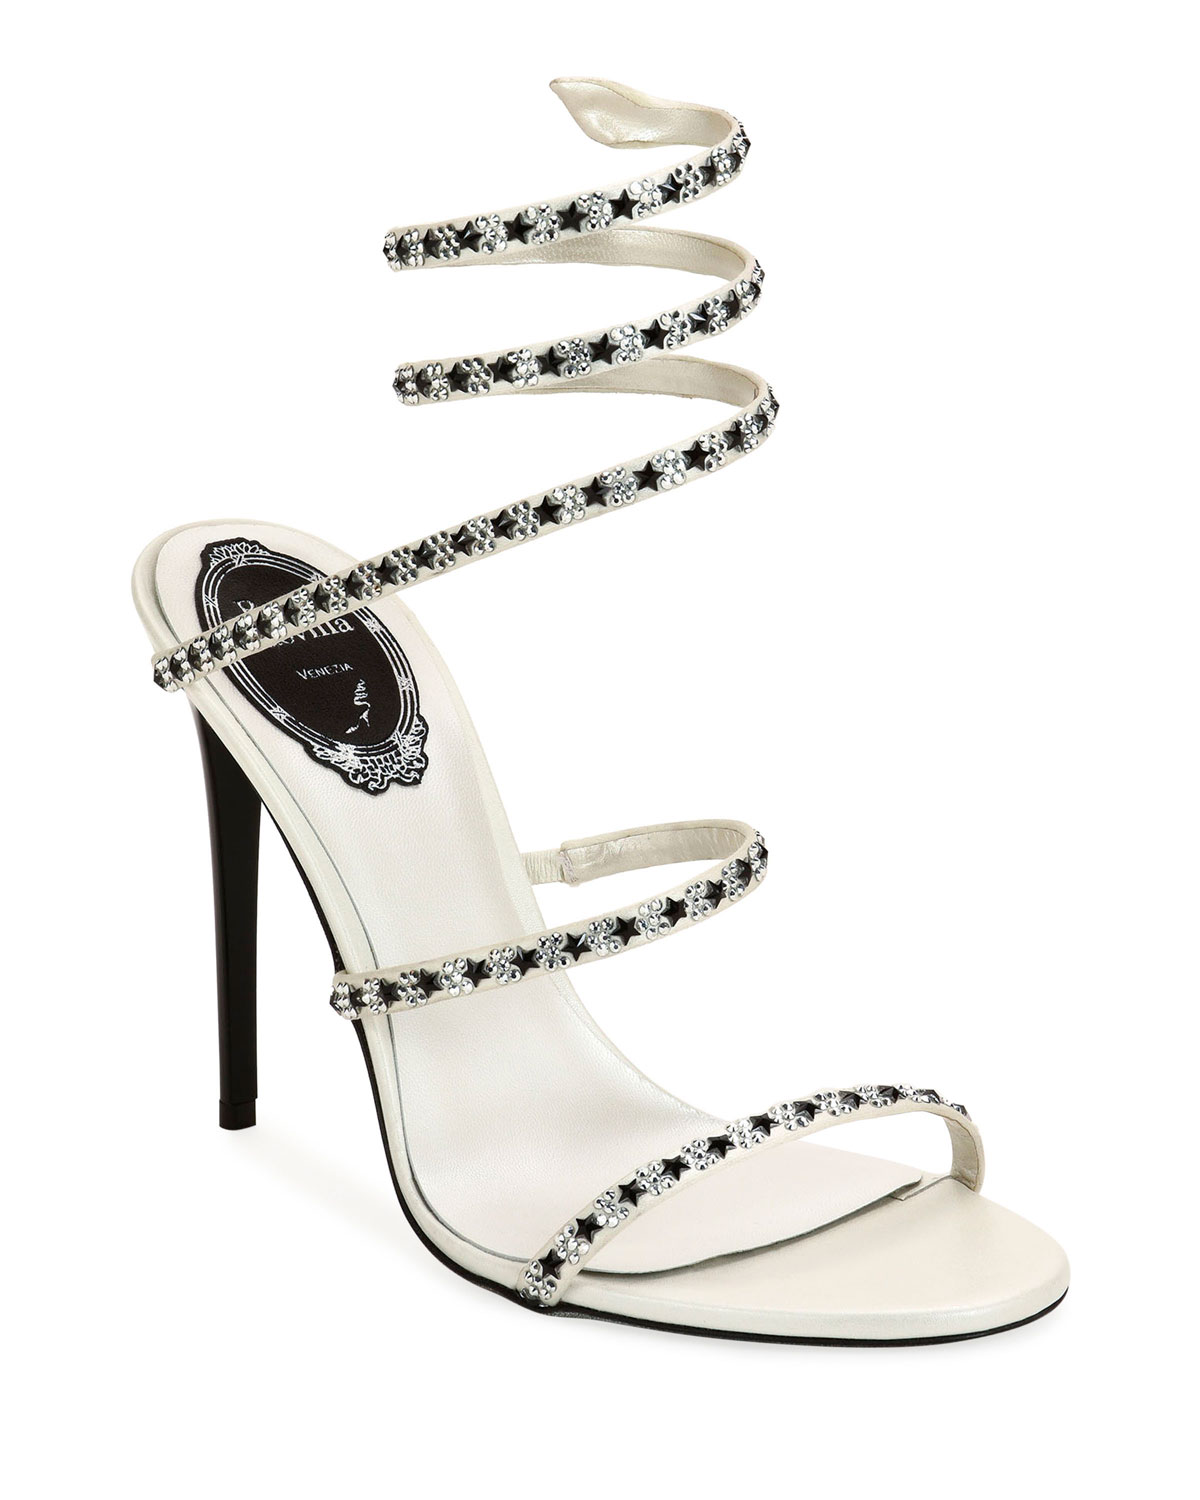 105mm Snake-Ankle Sandals with Stars